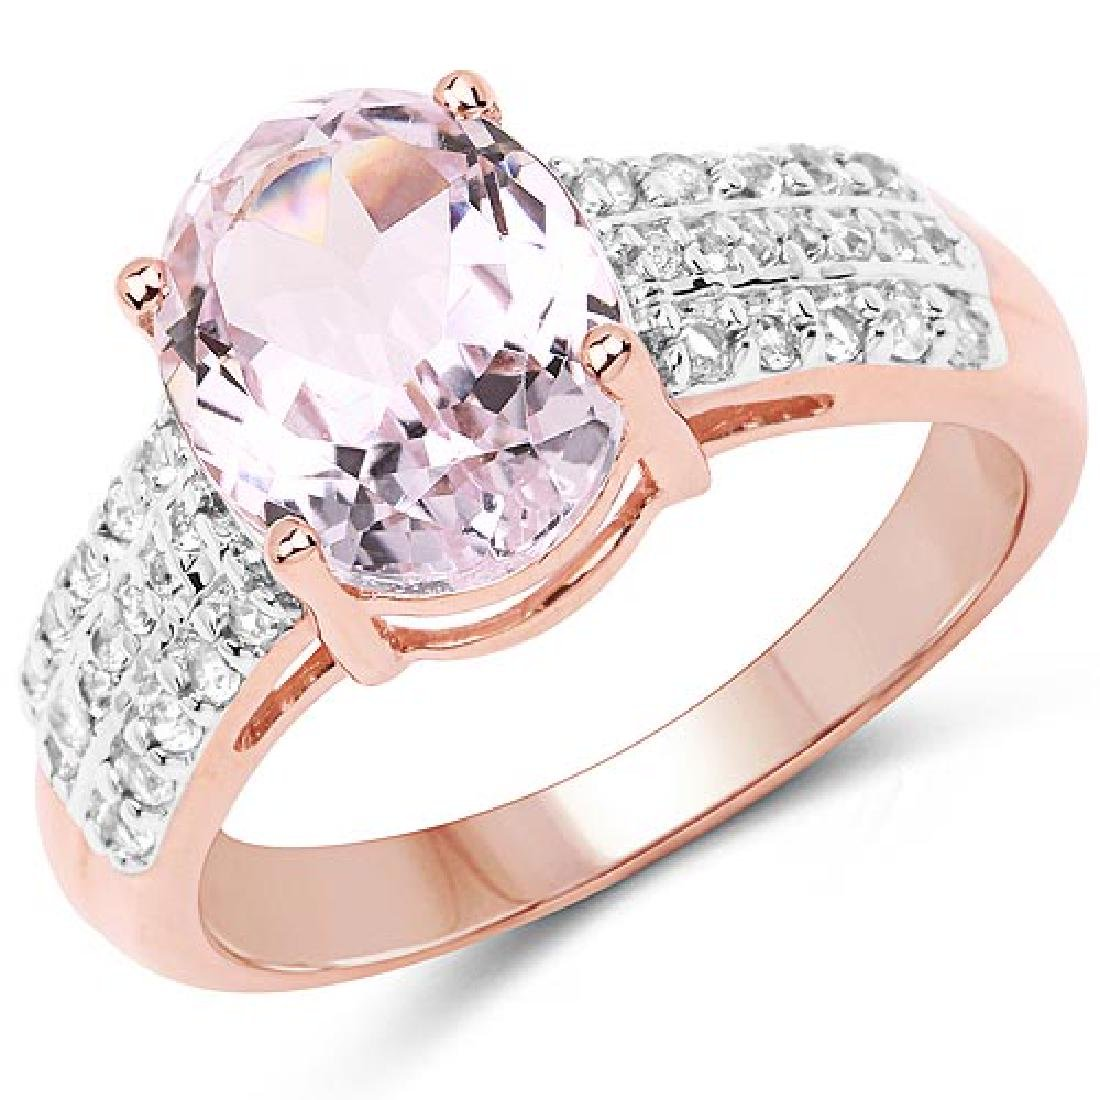 14K Rose Gold Plated 3.27 Carat Genuine Kunzite Oval an